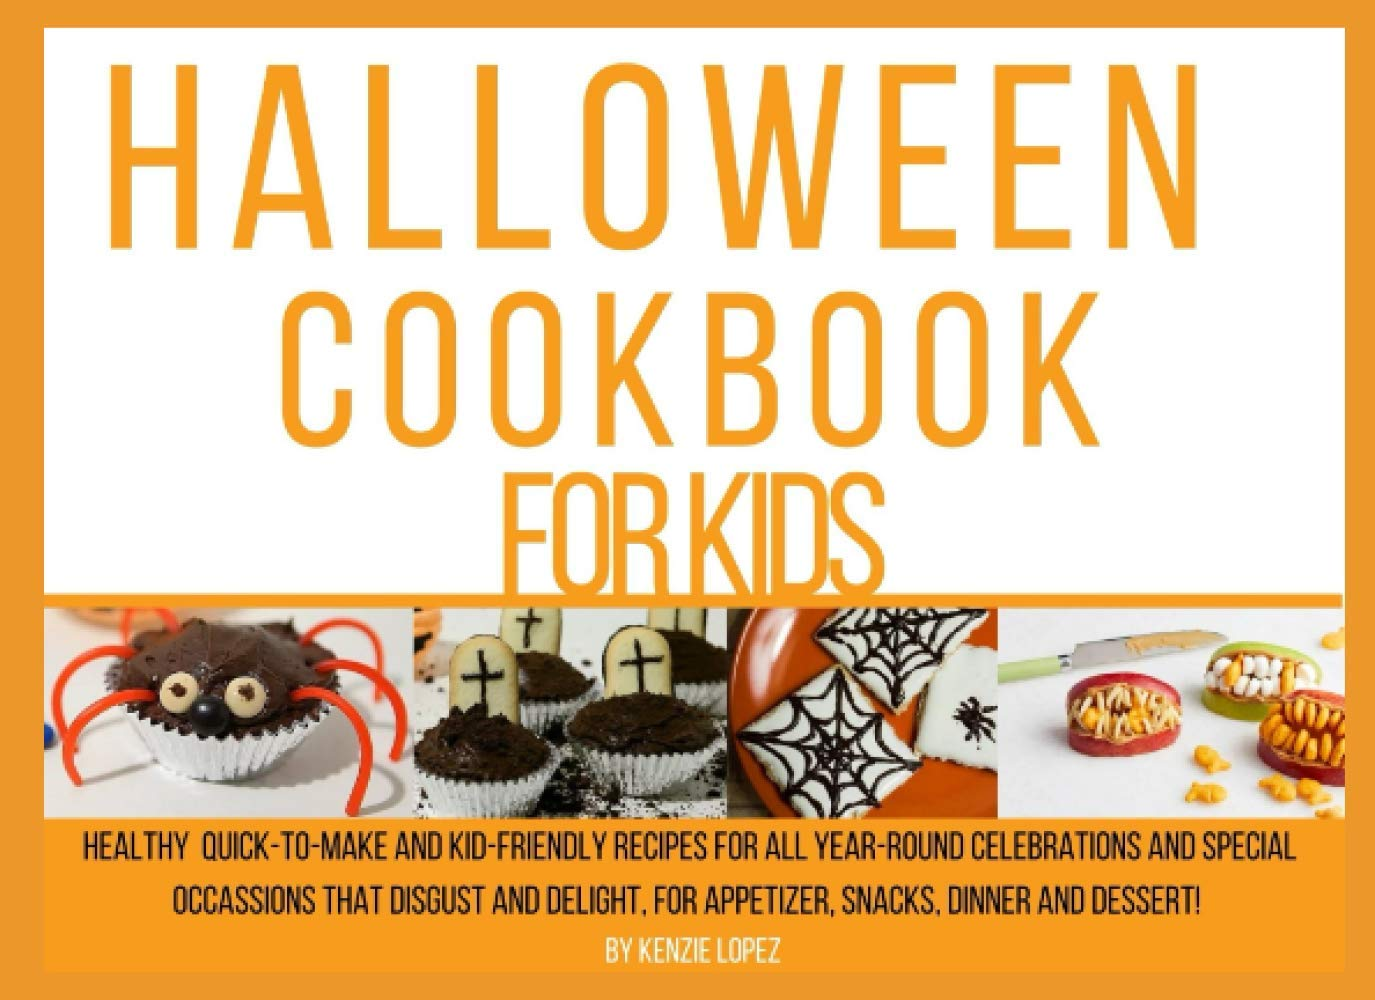 Halloween Cookbook For Kids: Healthy Quick-to-make And Kid-friendly Recipes For All Year-round Celebrations And Special Occasions That Disgust And Delight, For Appetizer, Snacks, Dinner And Dessert!